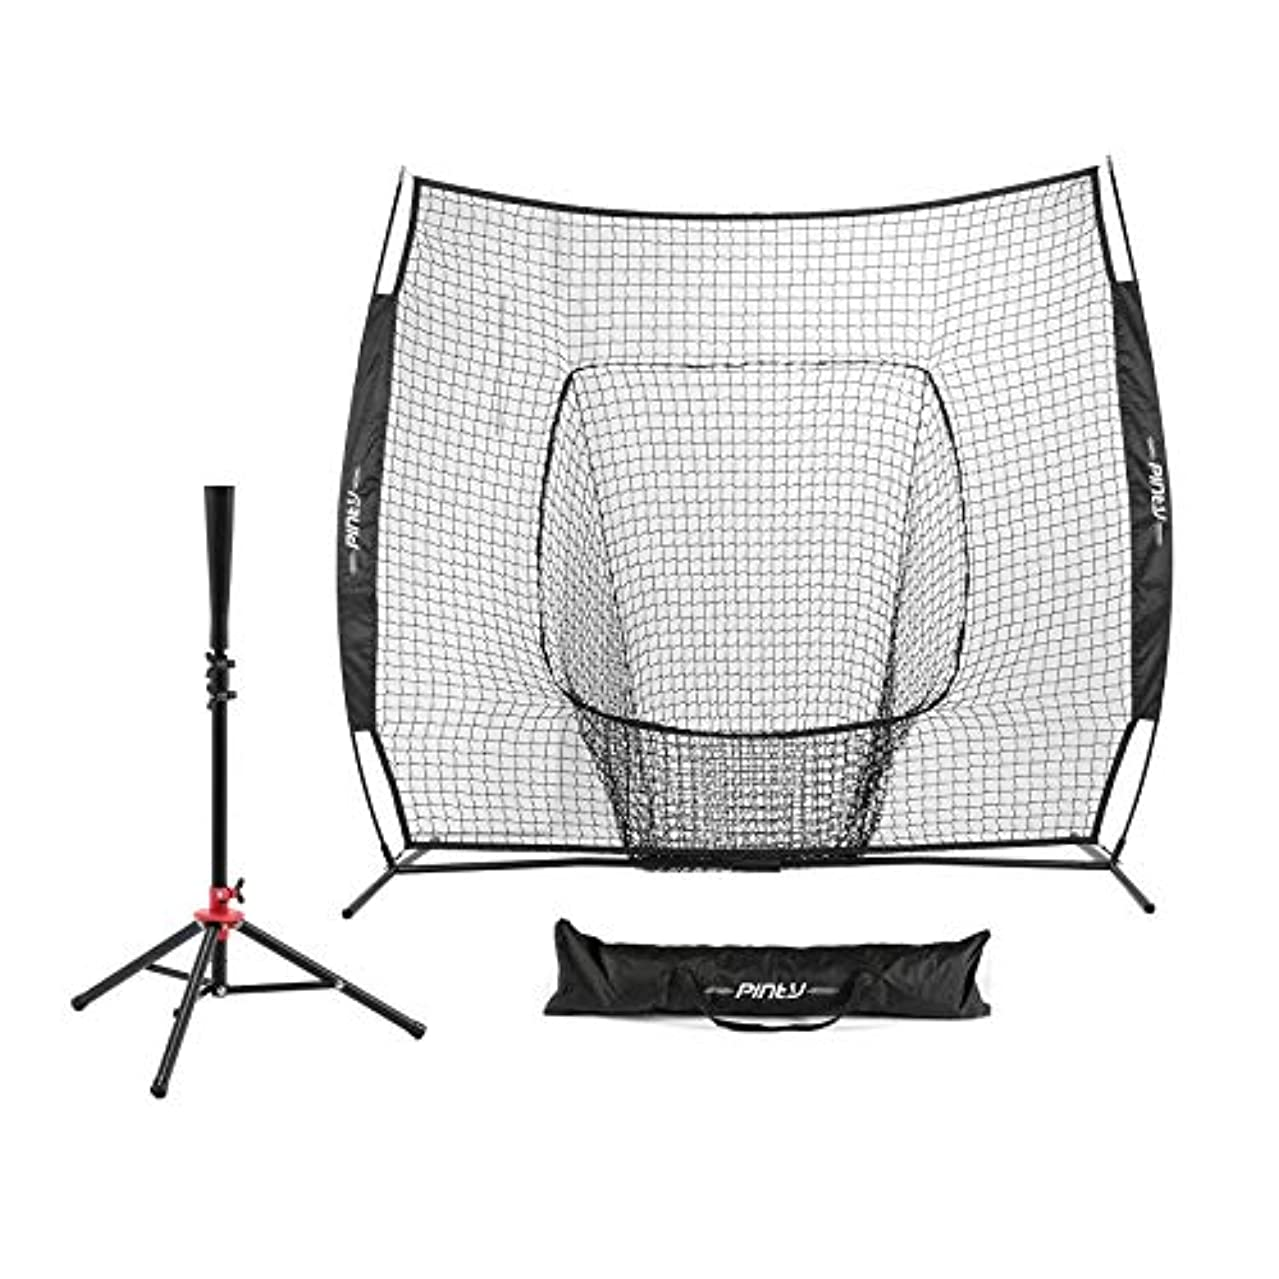 Pinty Baseball and Softball Practice Net 7'×7' Portable Hitting Batting Training Net with Carry Bag & Metal Frame + Baseball Softball Batting Tee (Baseball Net with Batting Tee)